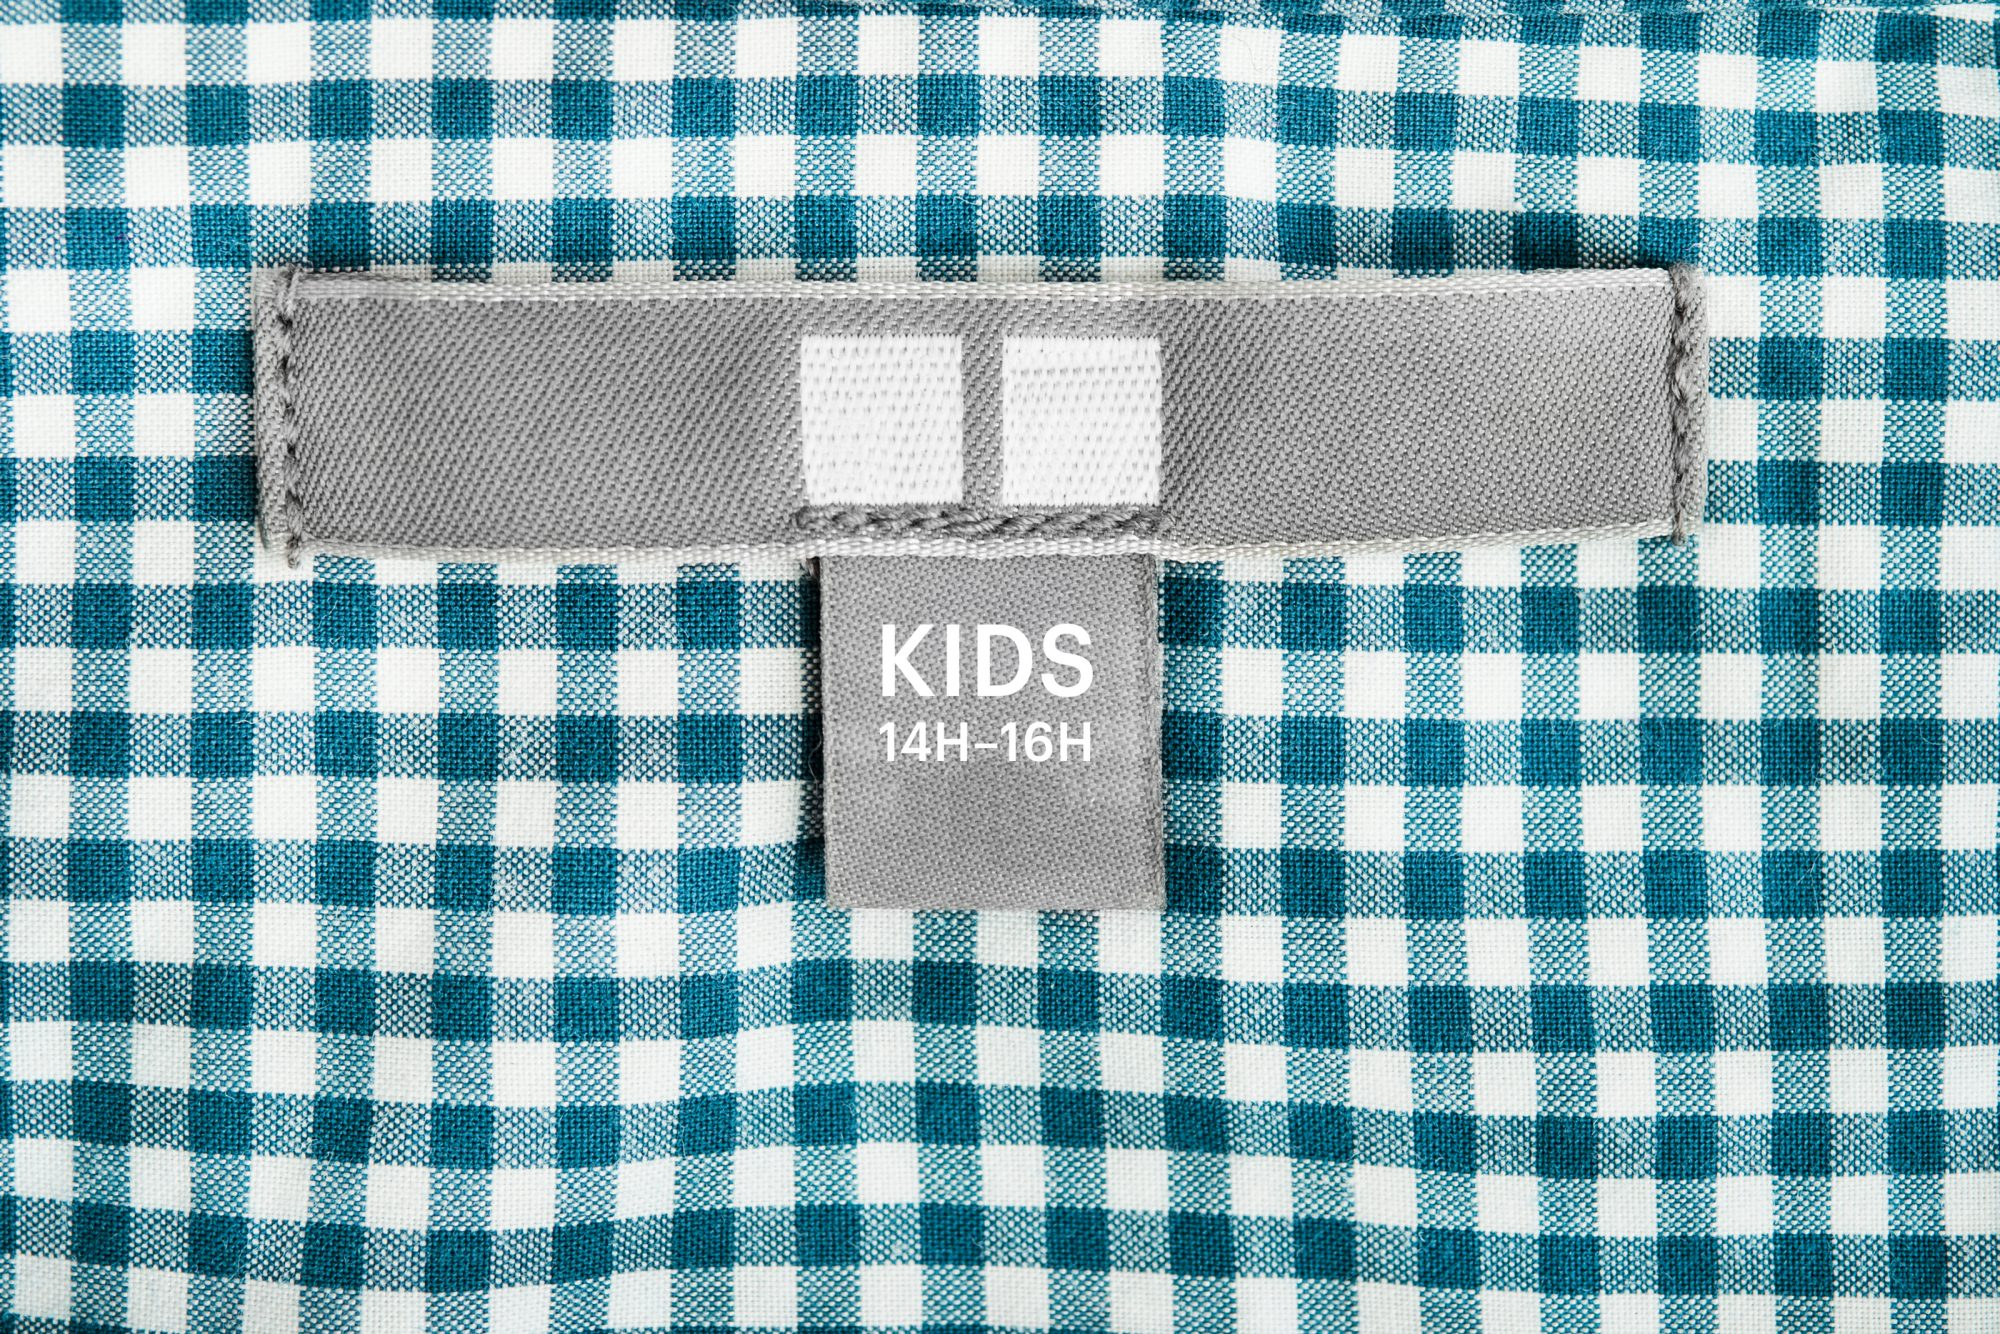 kids clothing label with husky sizes on it